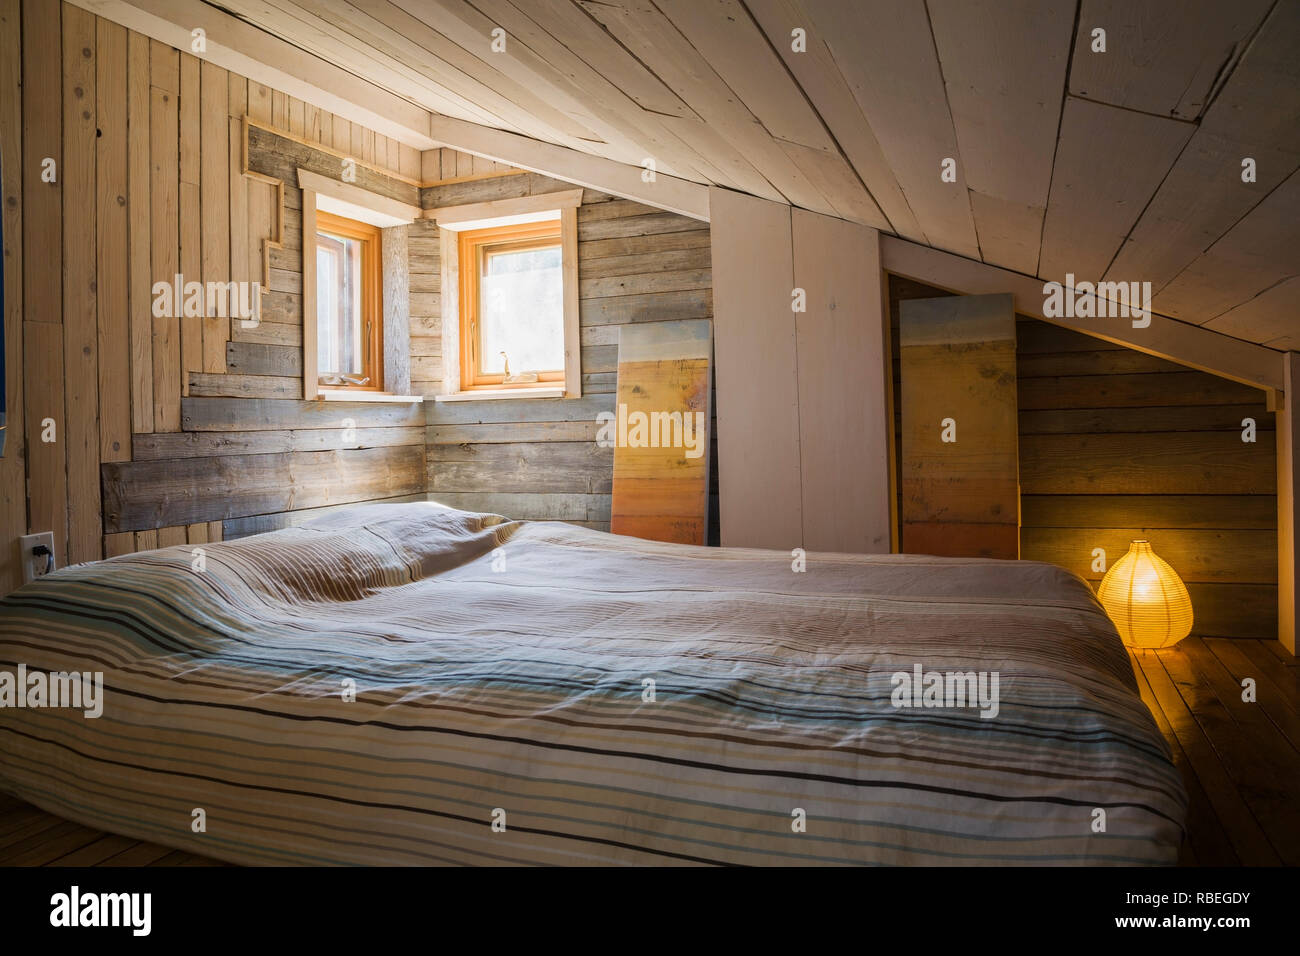 Mezzanine bedroom with old barn wood walls, sloped ceiling and queen ...